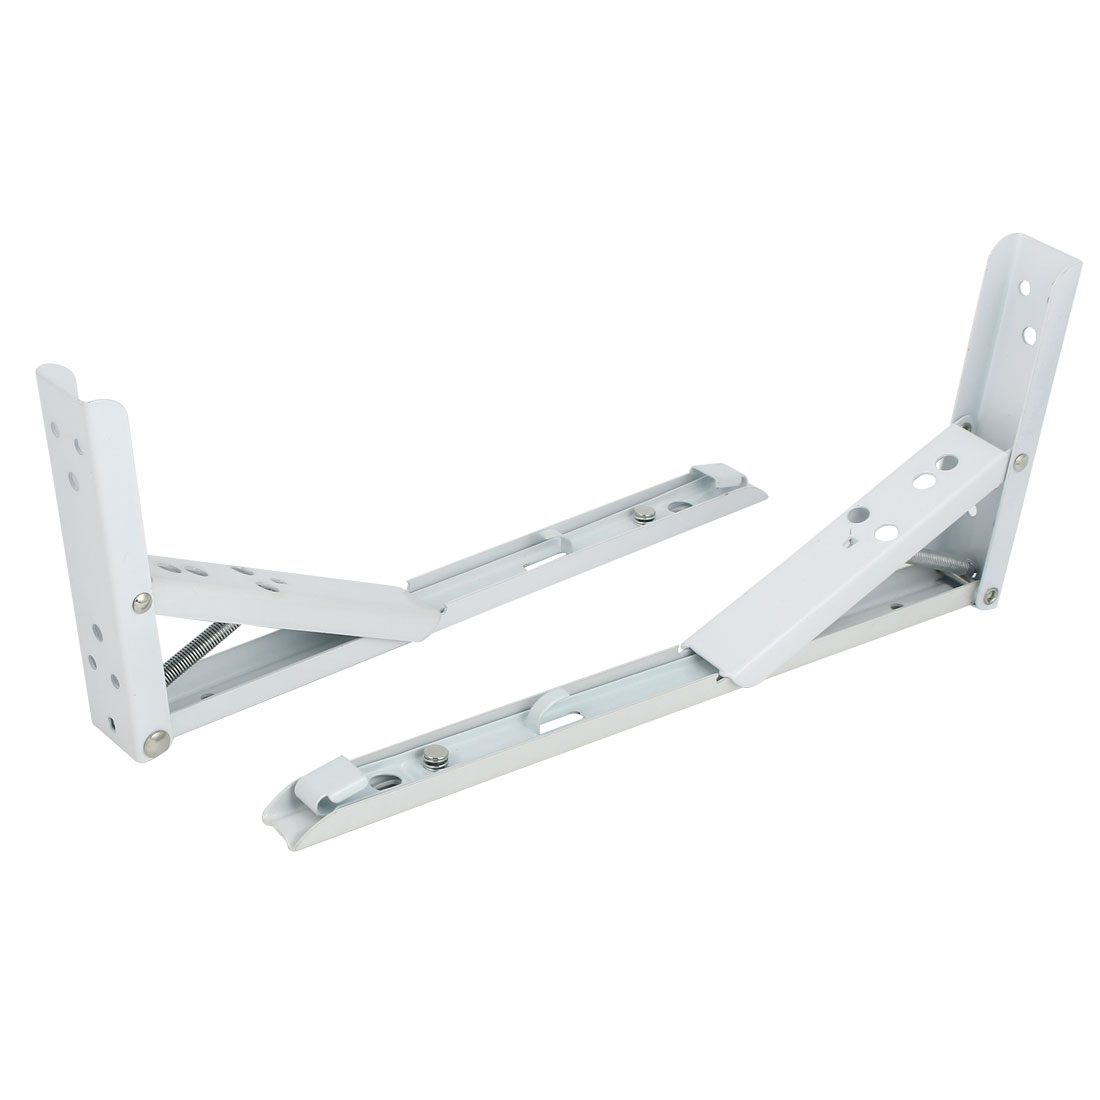 290mm x 132mm Folding Spring Wall Mounted Shelf Bracket Brace Support 2pcs